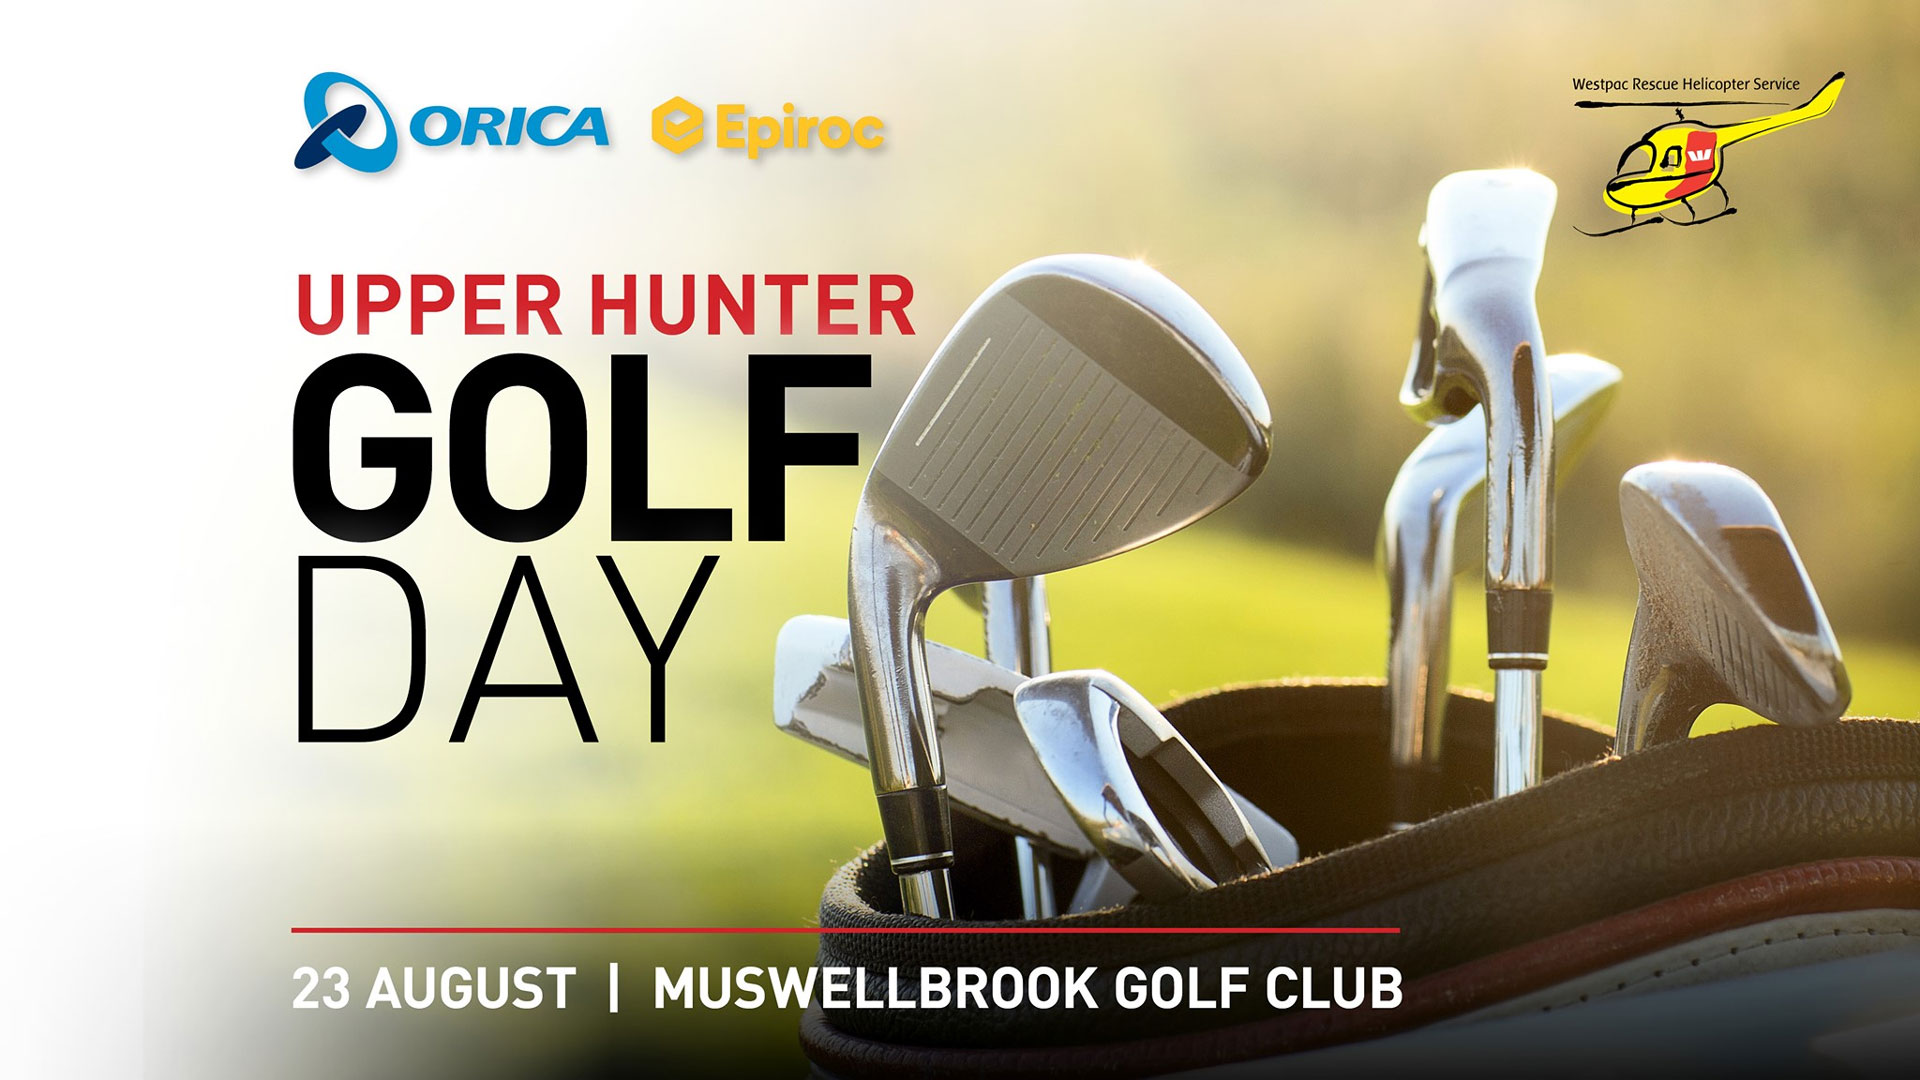 UPPER HUNTER GOLF DAY 23rd August 2019 - Upper Hunter Events